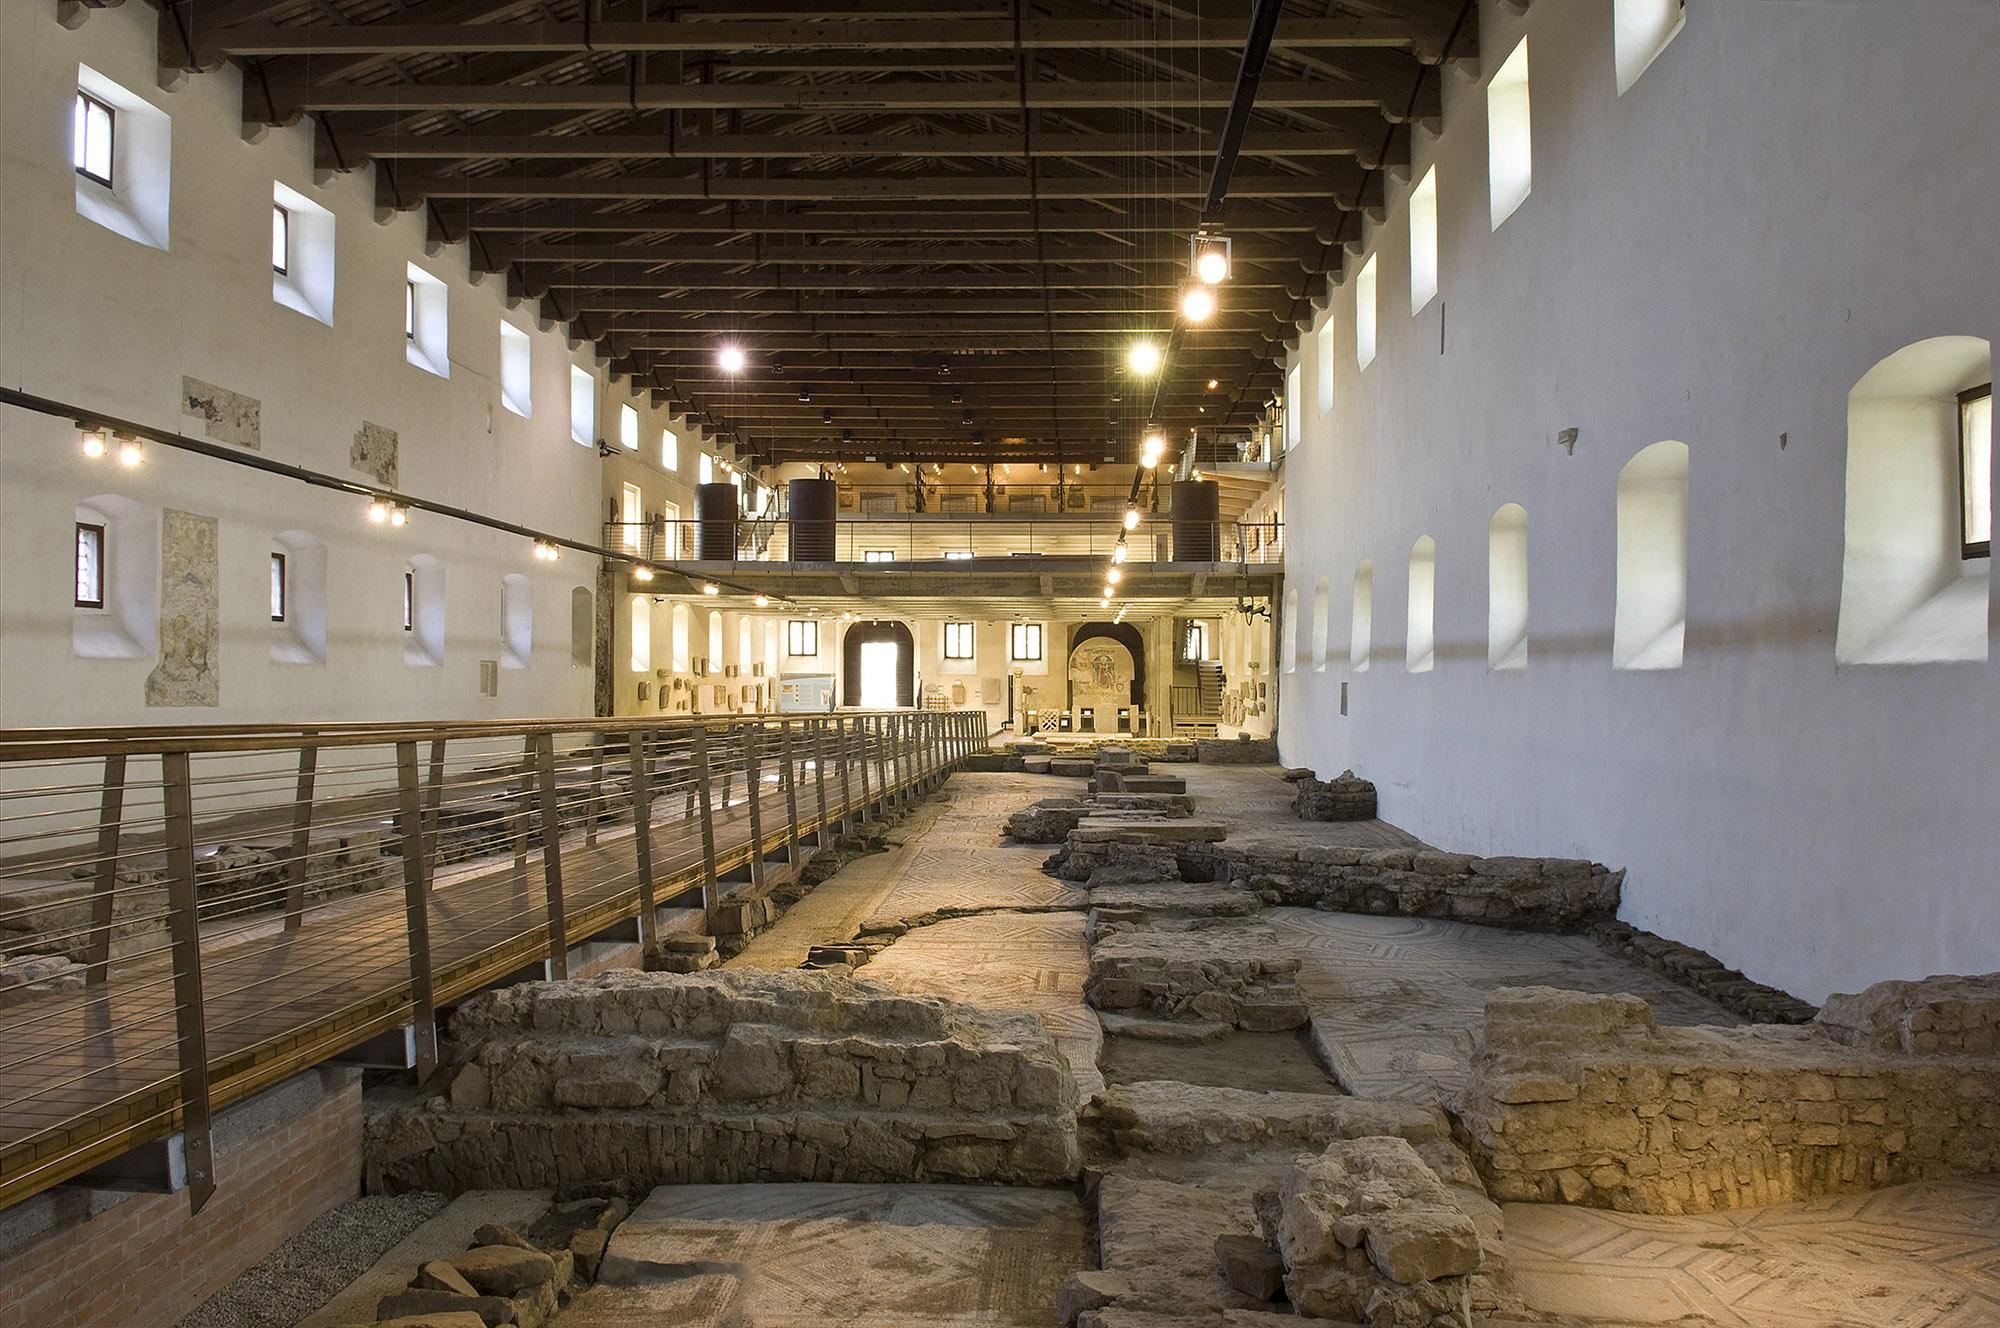 The Early Christian Museum is both a museum and an archaeological site, offering the chance to admire the remains of an Early Christian basilica—above which sits the modern building. – © Gianluca Baronchelli